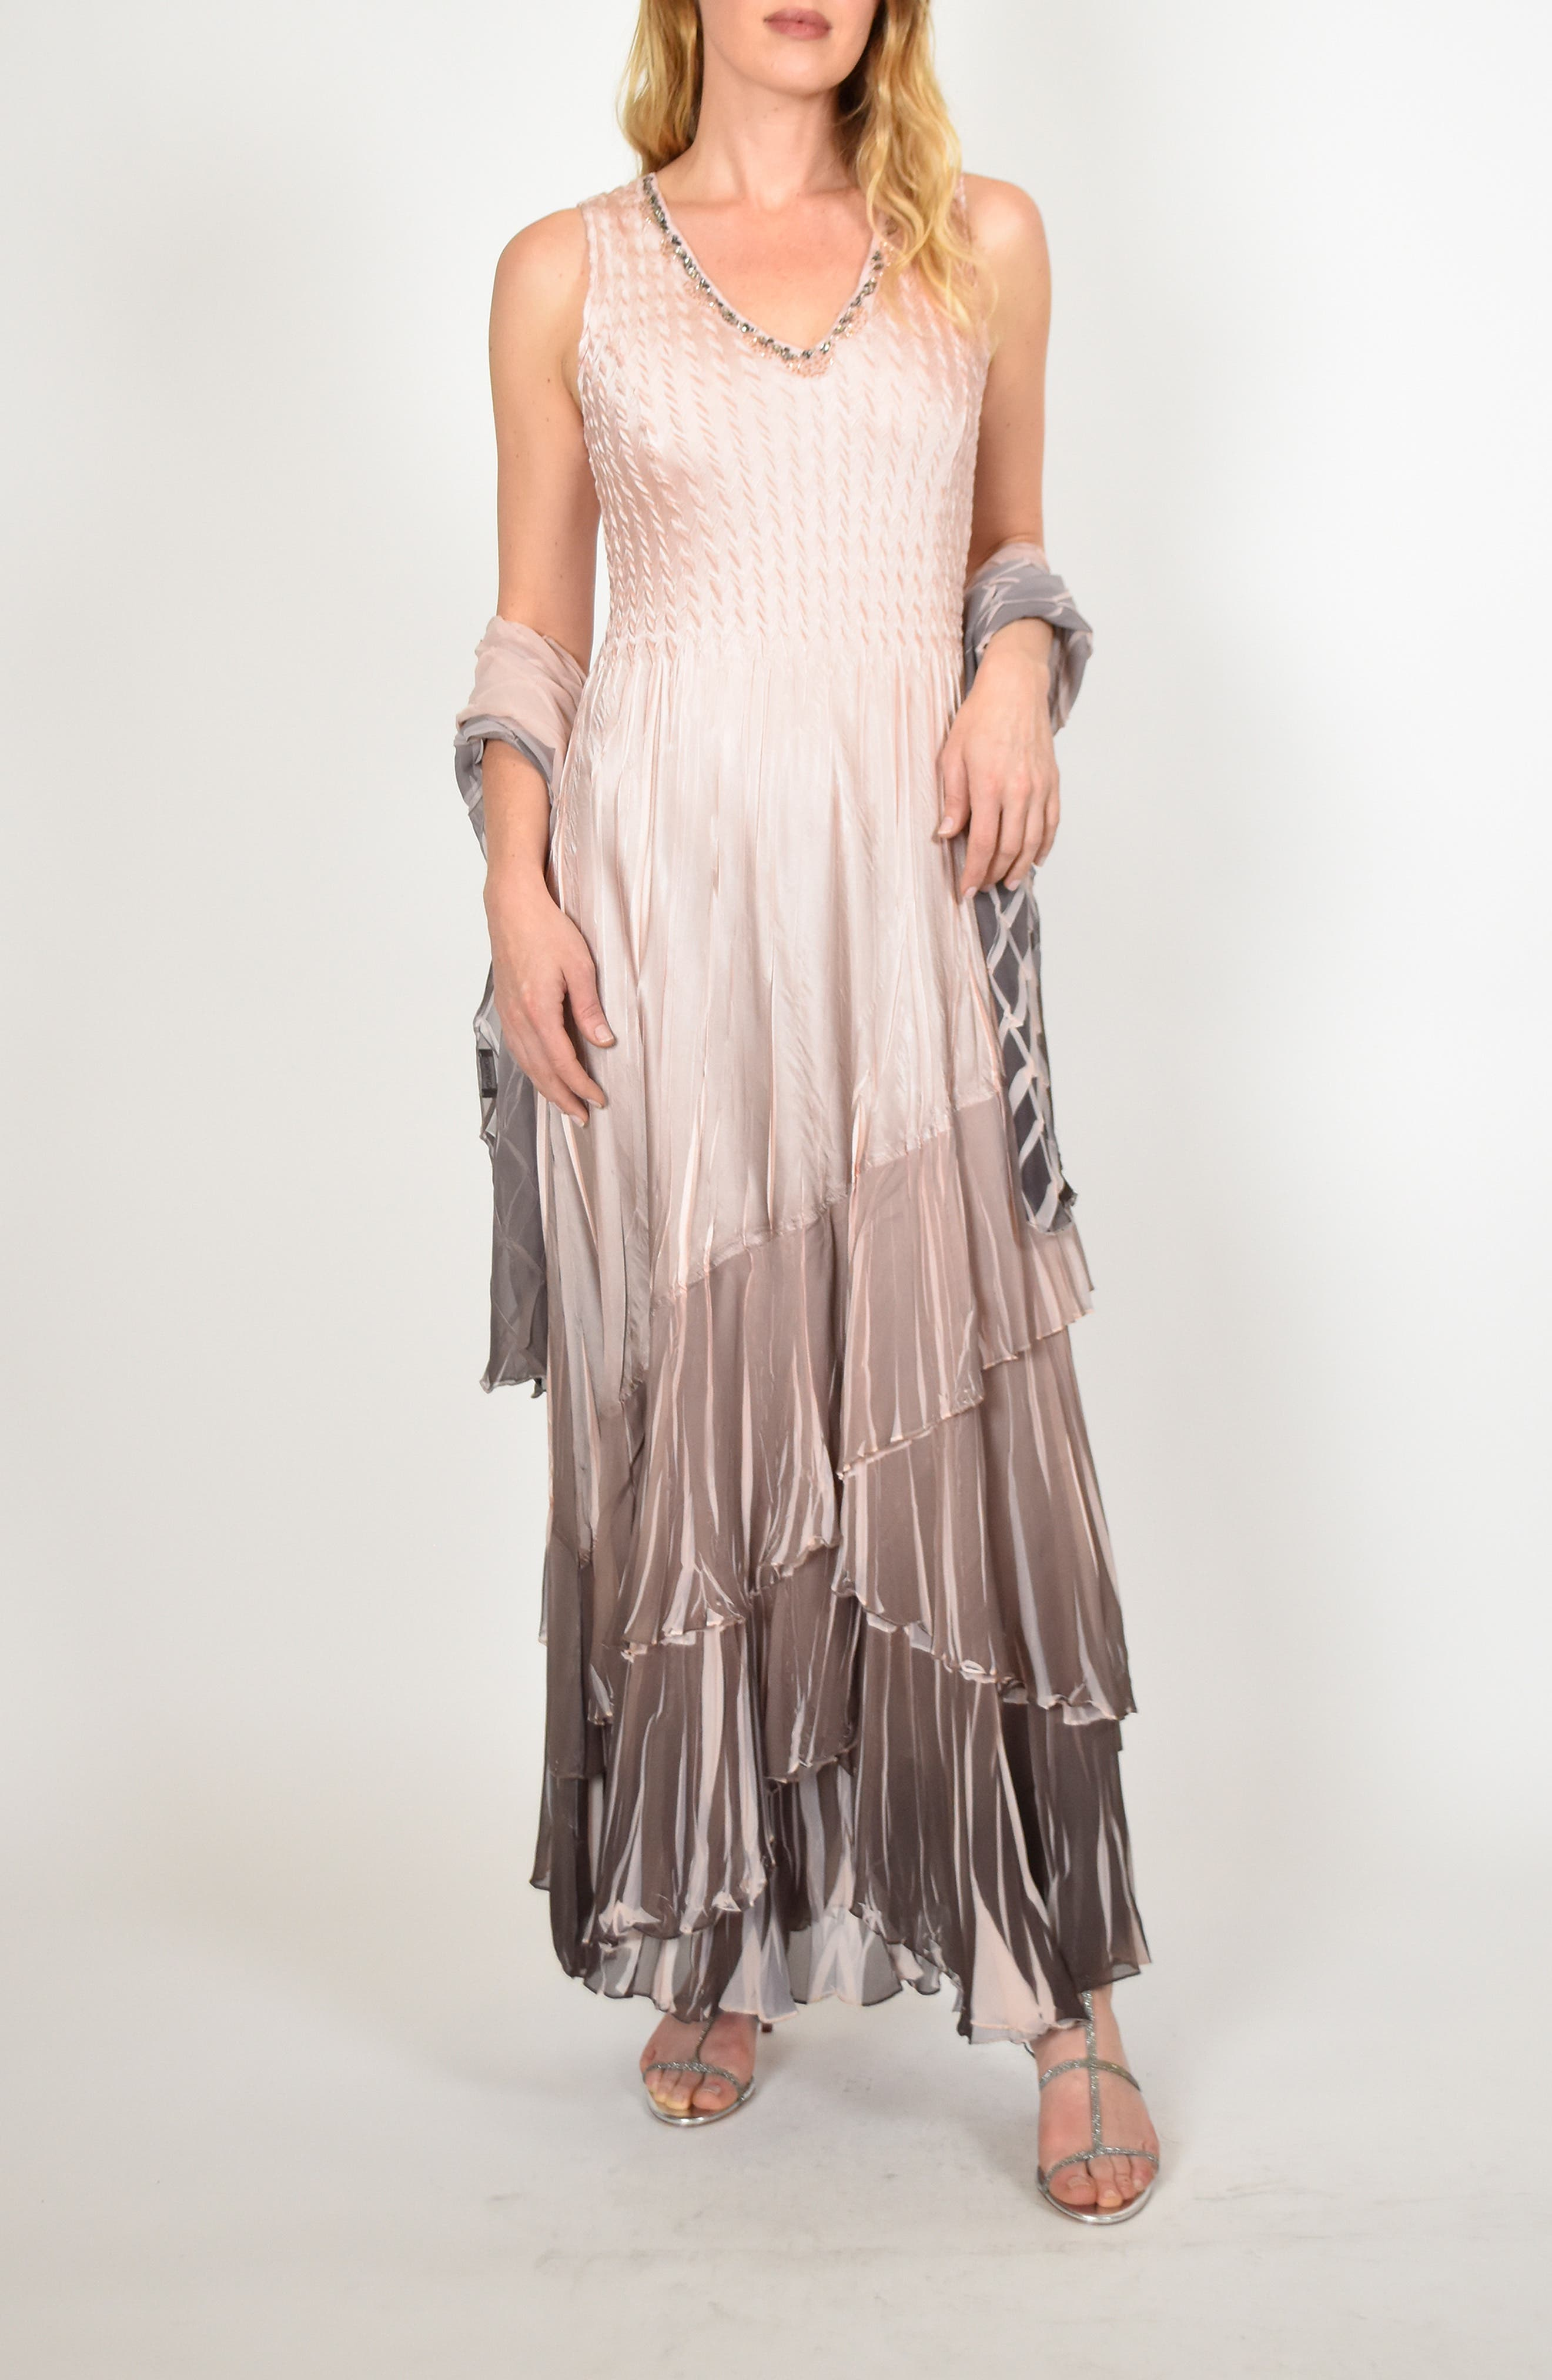 Petite Komarov Layered Maxi Dress With Wrap, Beige